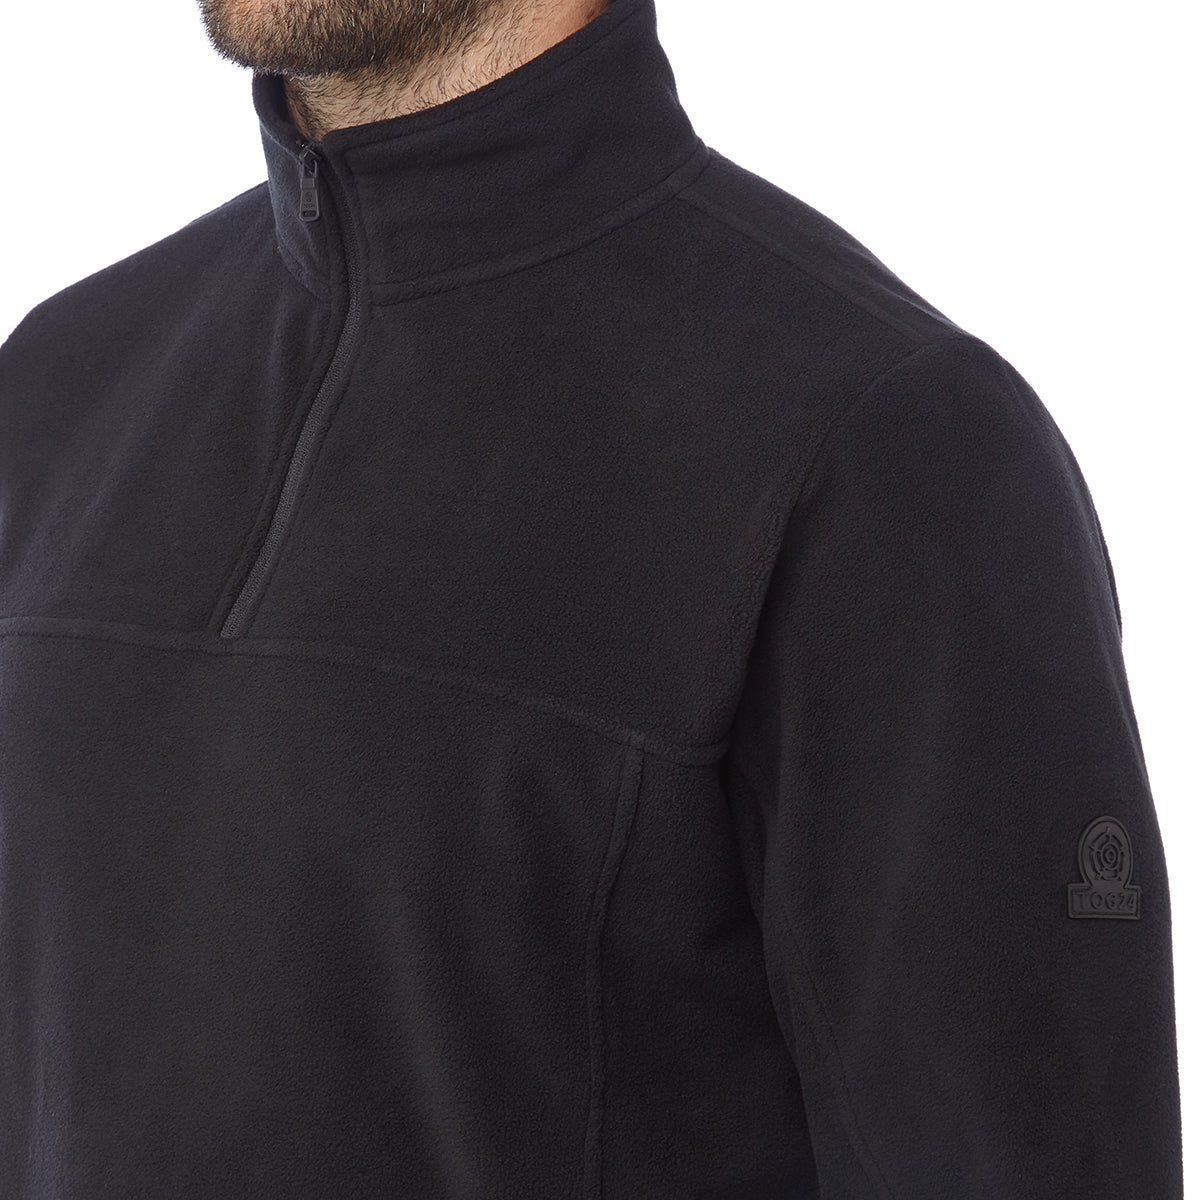 Hecky Mens Fleece Zipneck - Black image 4